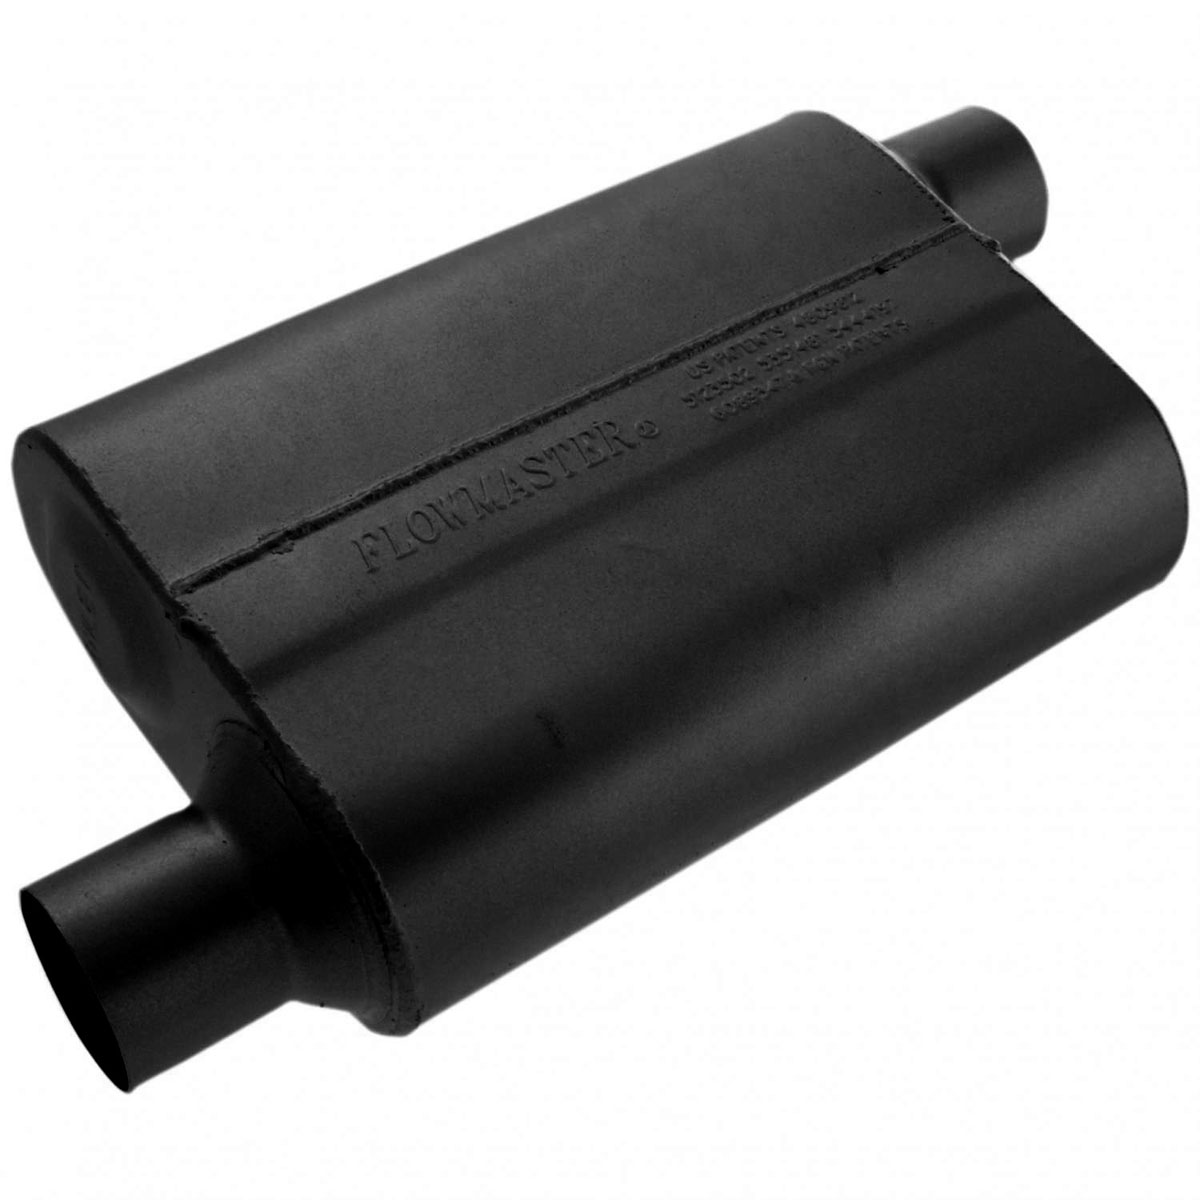 Flowmaster 42543 - Flowmaster Muffler 40 Series 2.50 Offset IN / 2.50 Offset OUT - Aggressive Sound